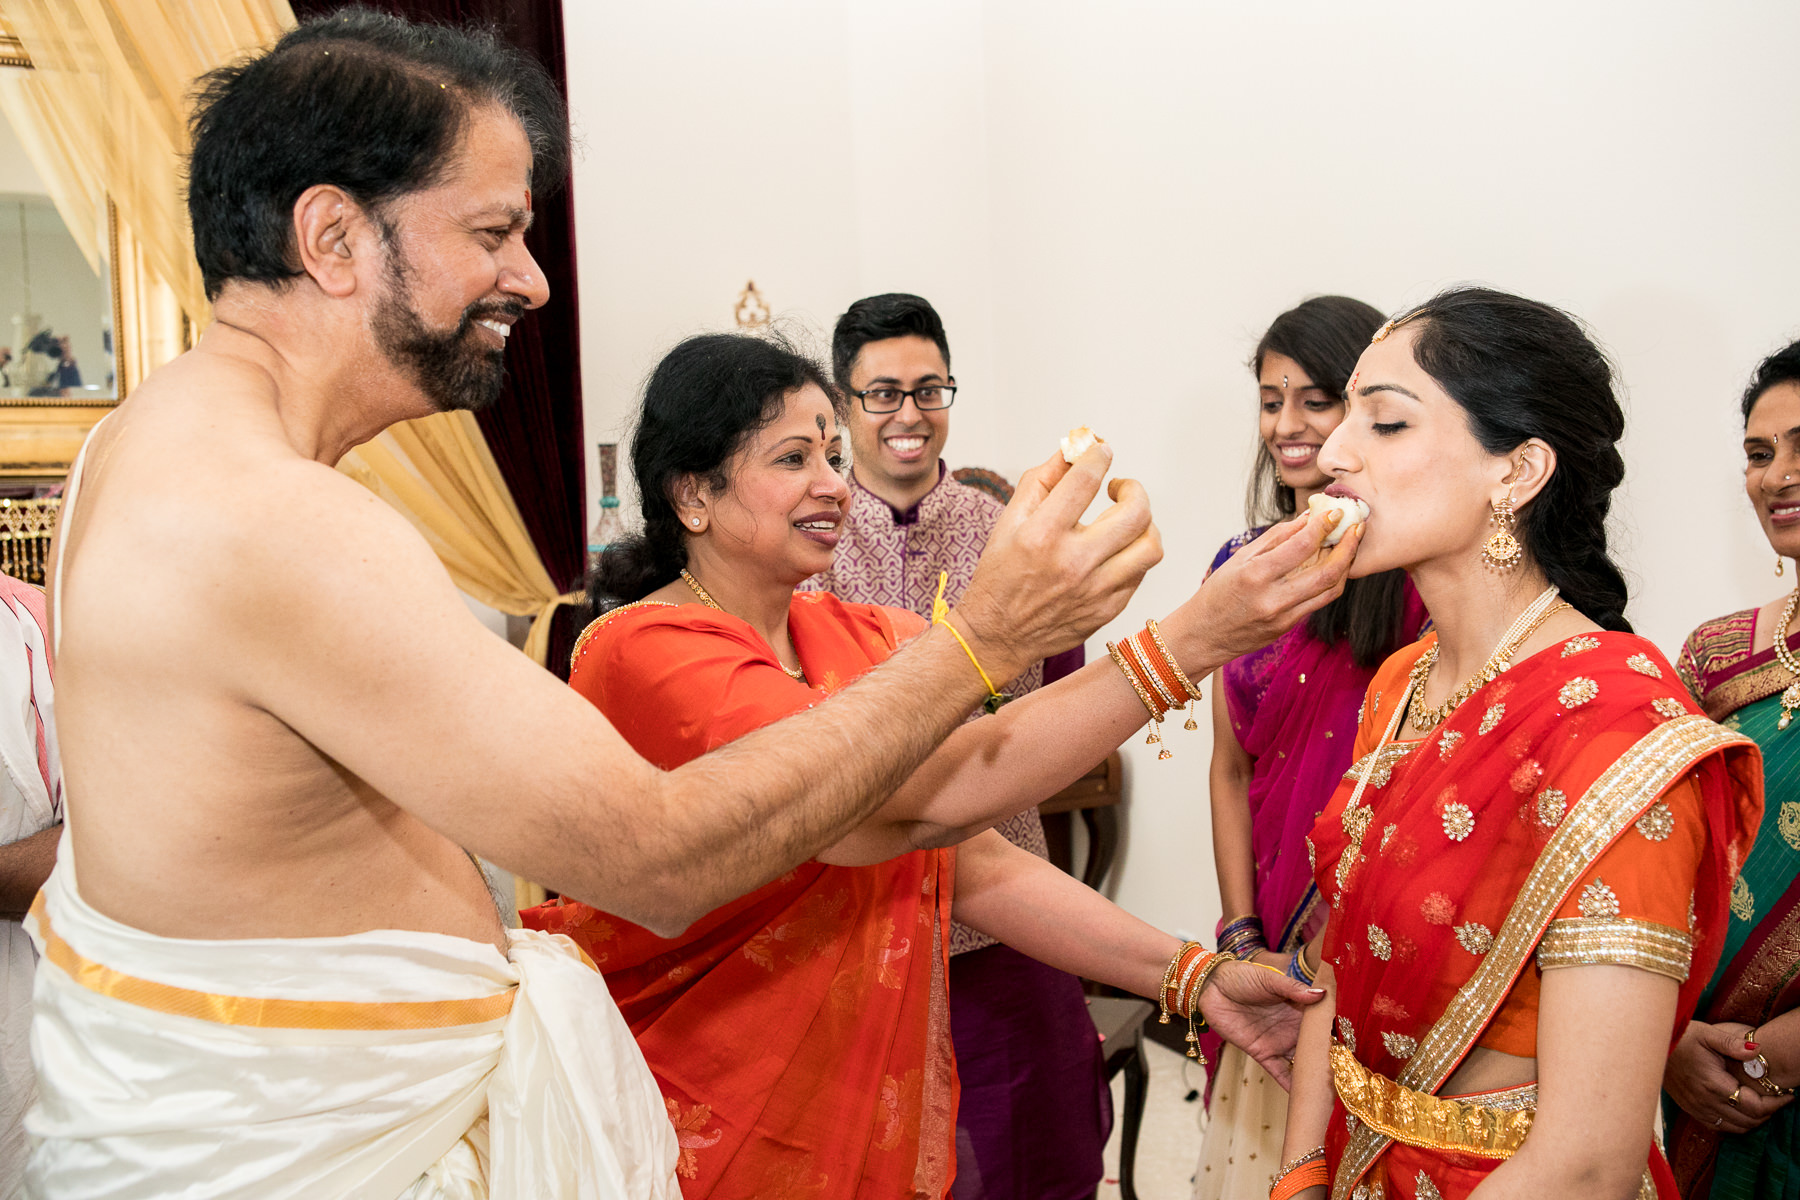 indian in laws feed bride sweets during indian wedding photographer in southern california